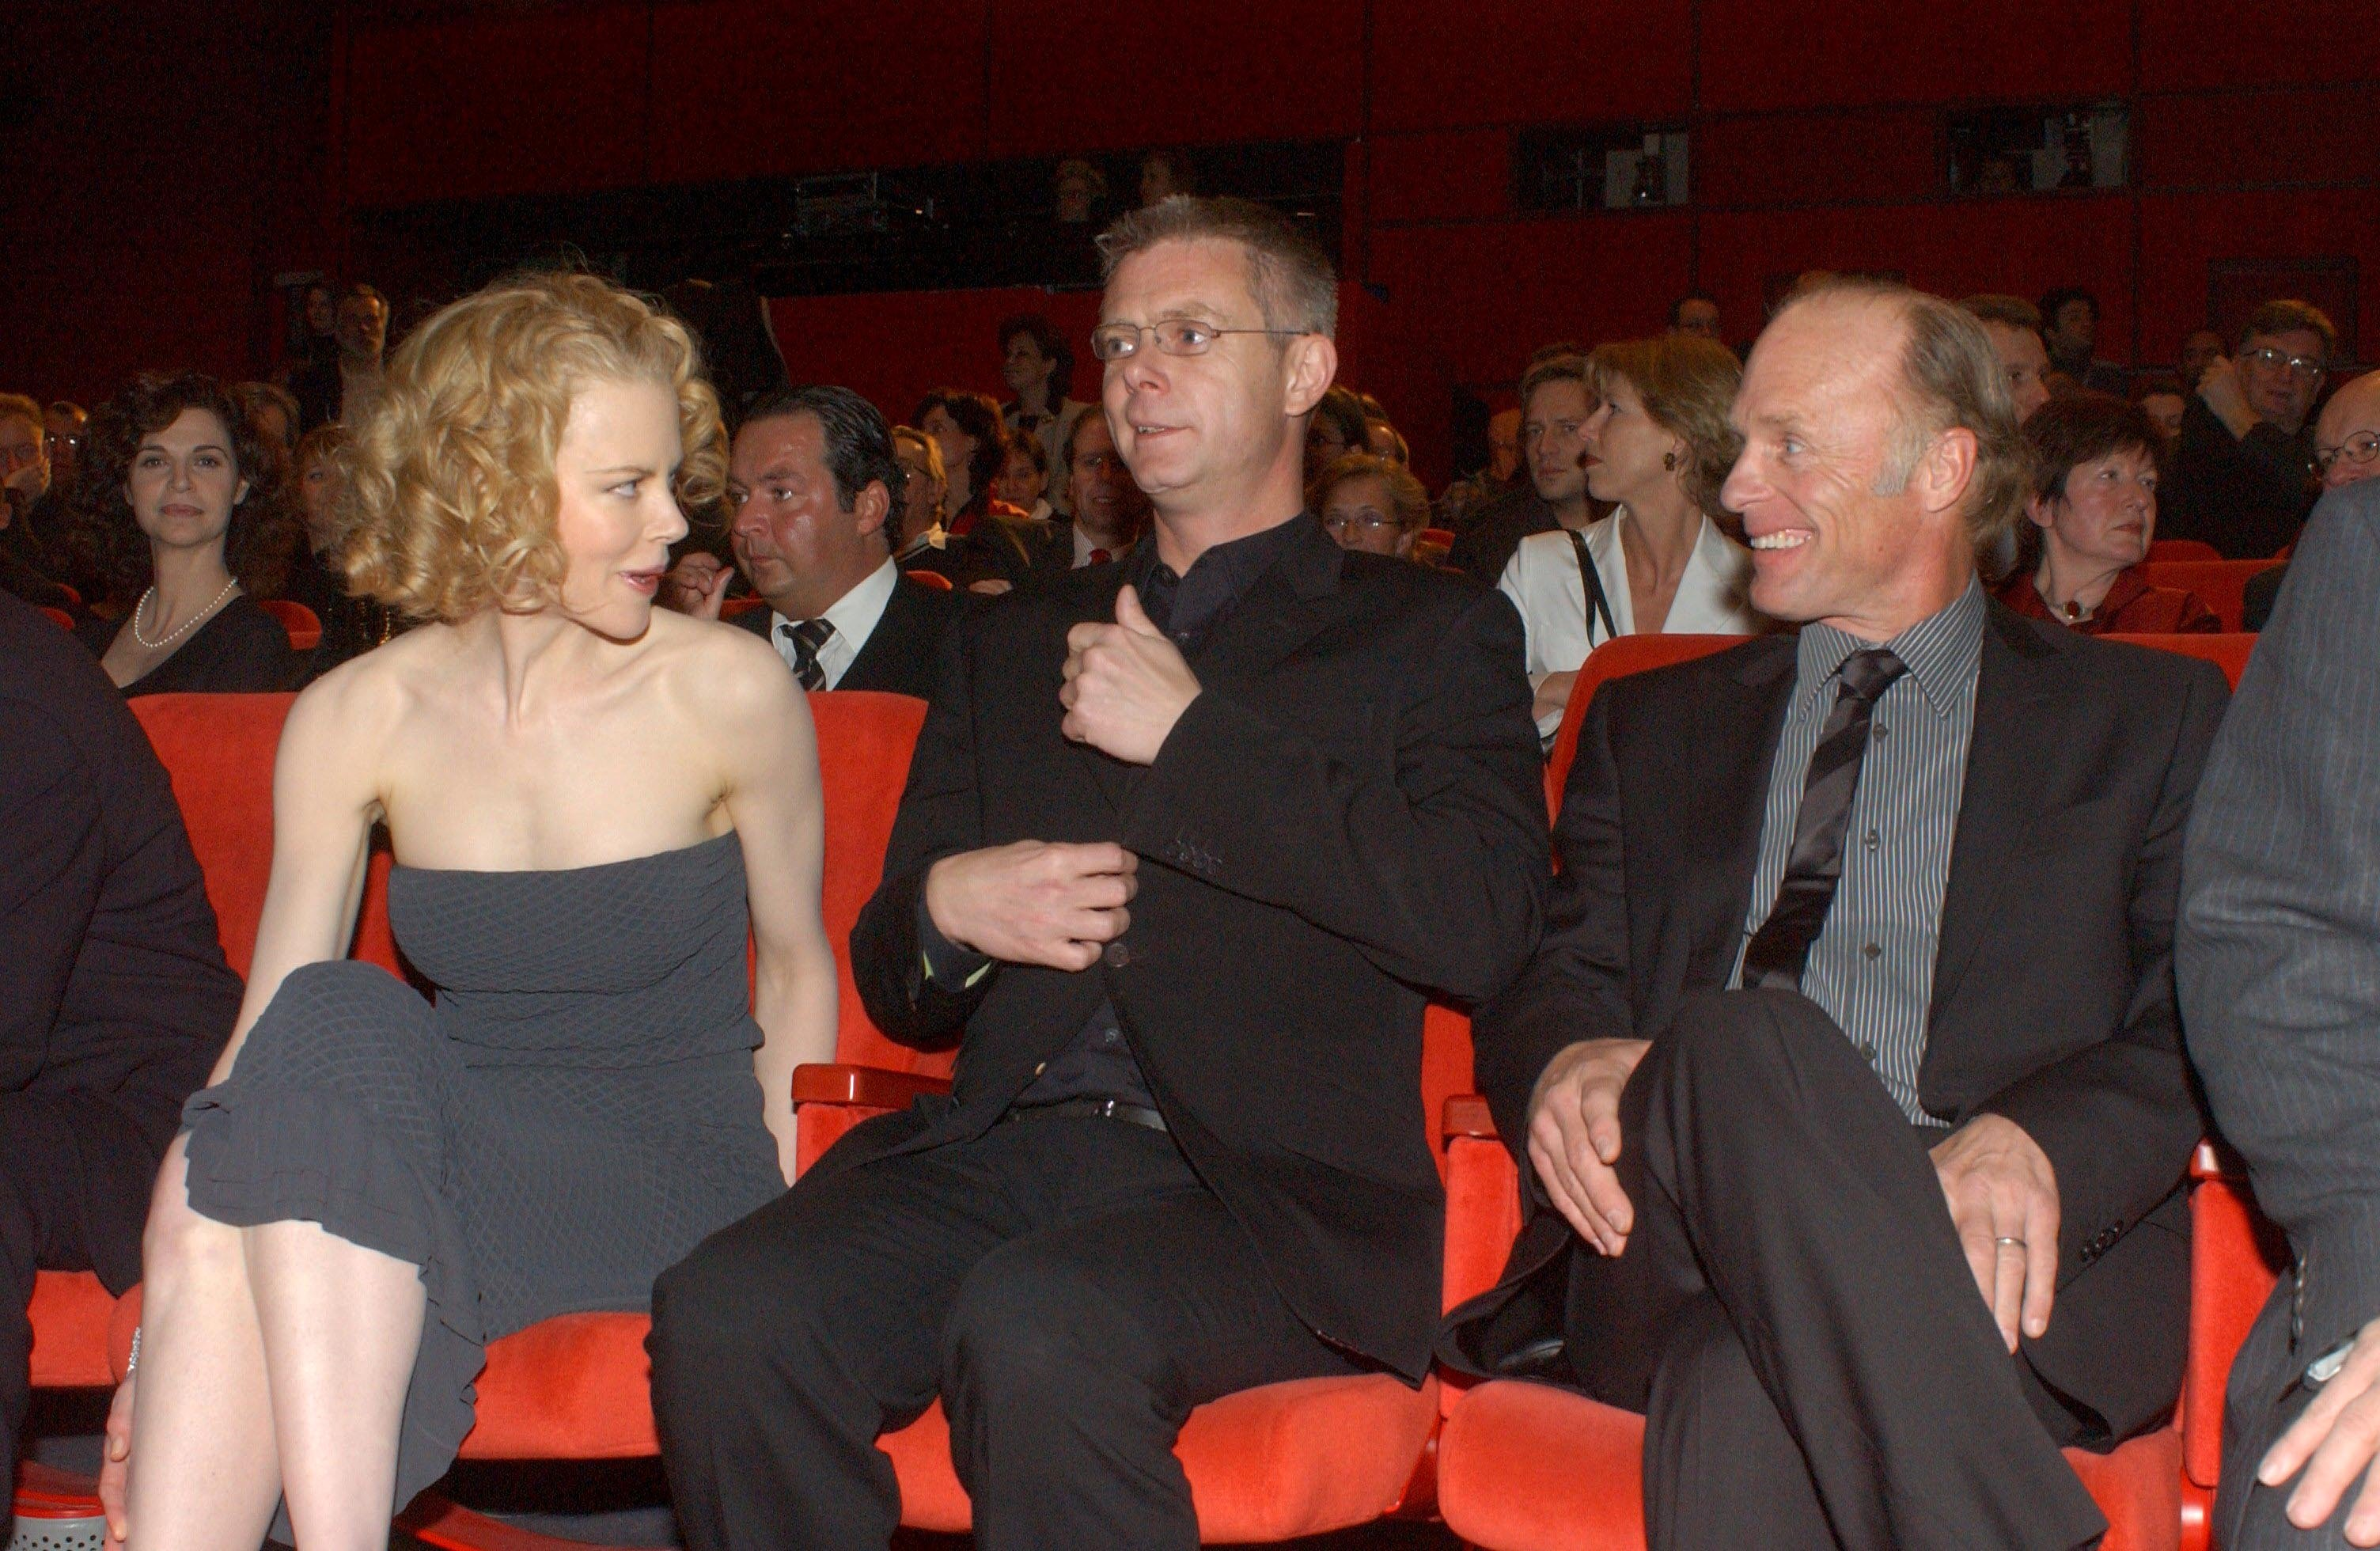 NICOLE KIDMAN WITH STEPHEN DALDRY AND ED HARRISNICOLE KIDMAN PROMOTING FILM 'THE HOURS' , BERLIN FILM FESTIVAL, GERMANY - 08 FEB 2003